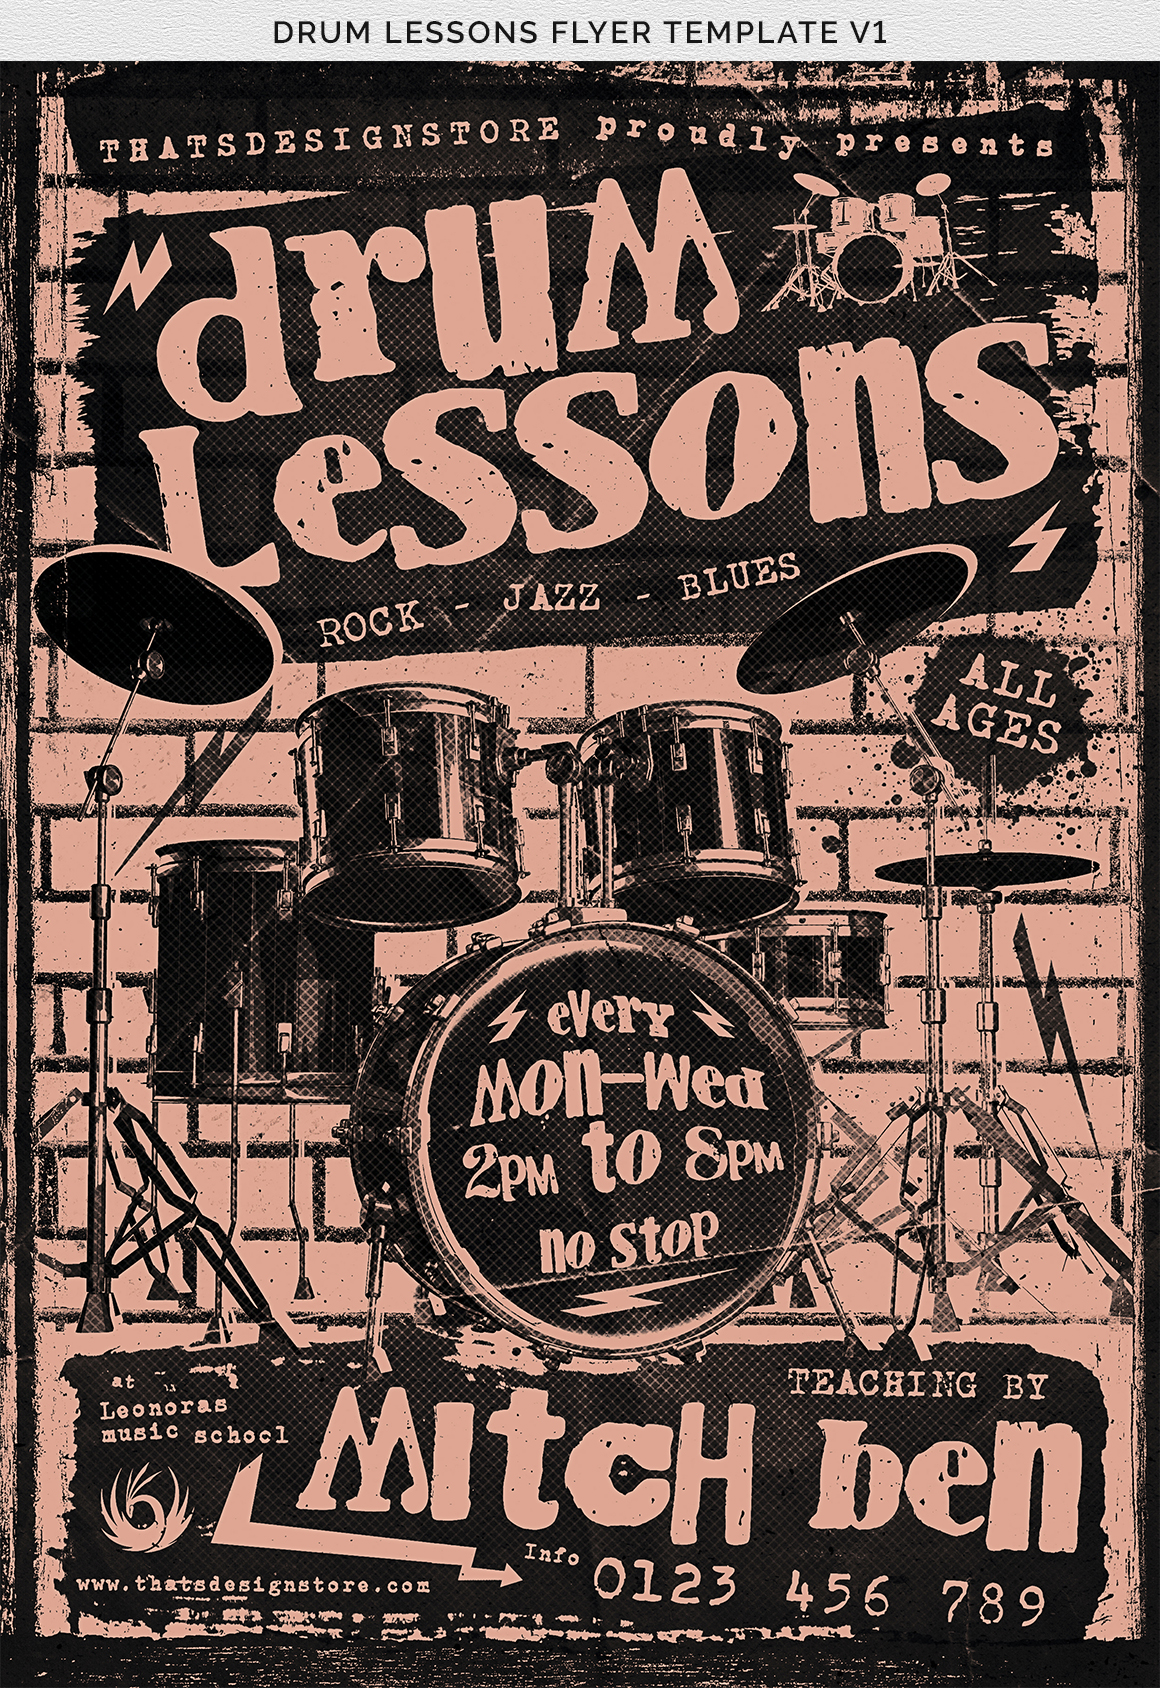 Drum Lessons Flyer Template V1 example image 10